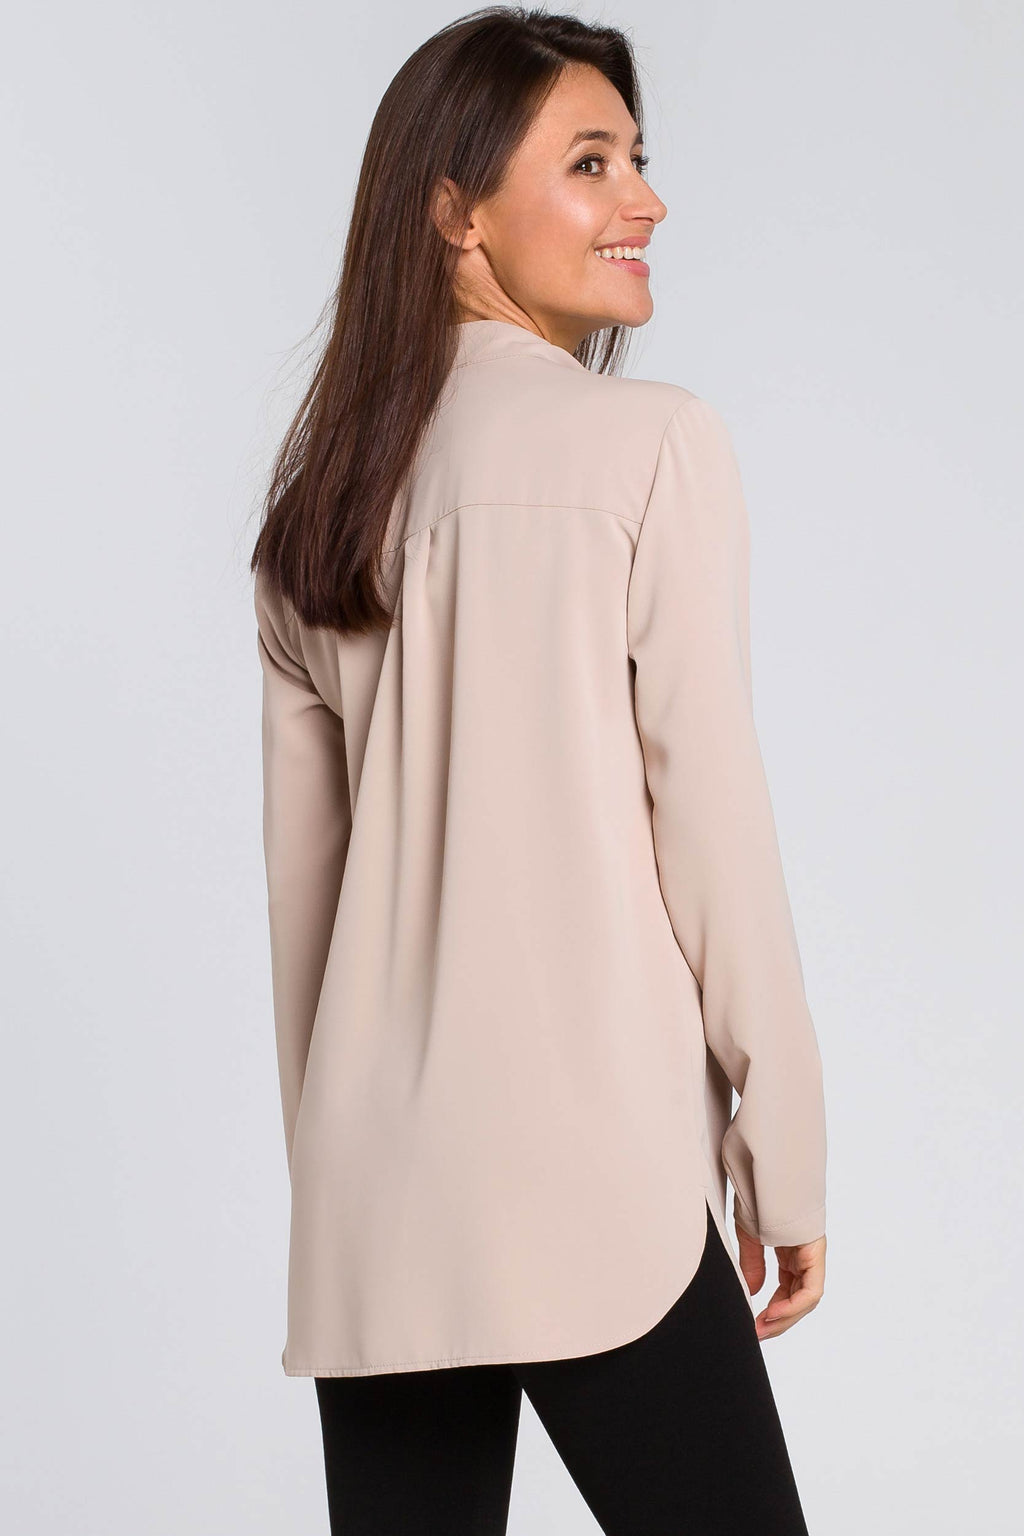 Beige Blouse With Utility Flap Pockets - So Chic Boutique